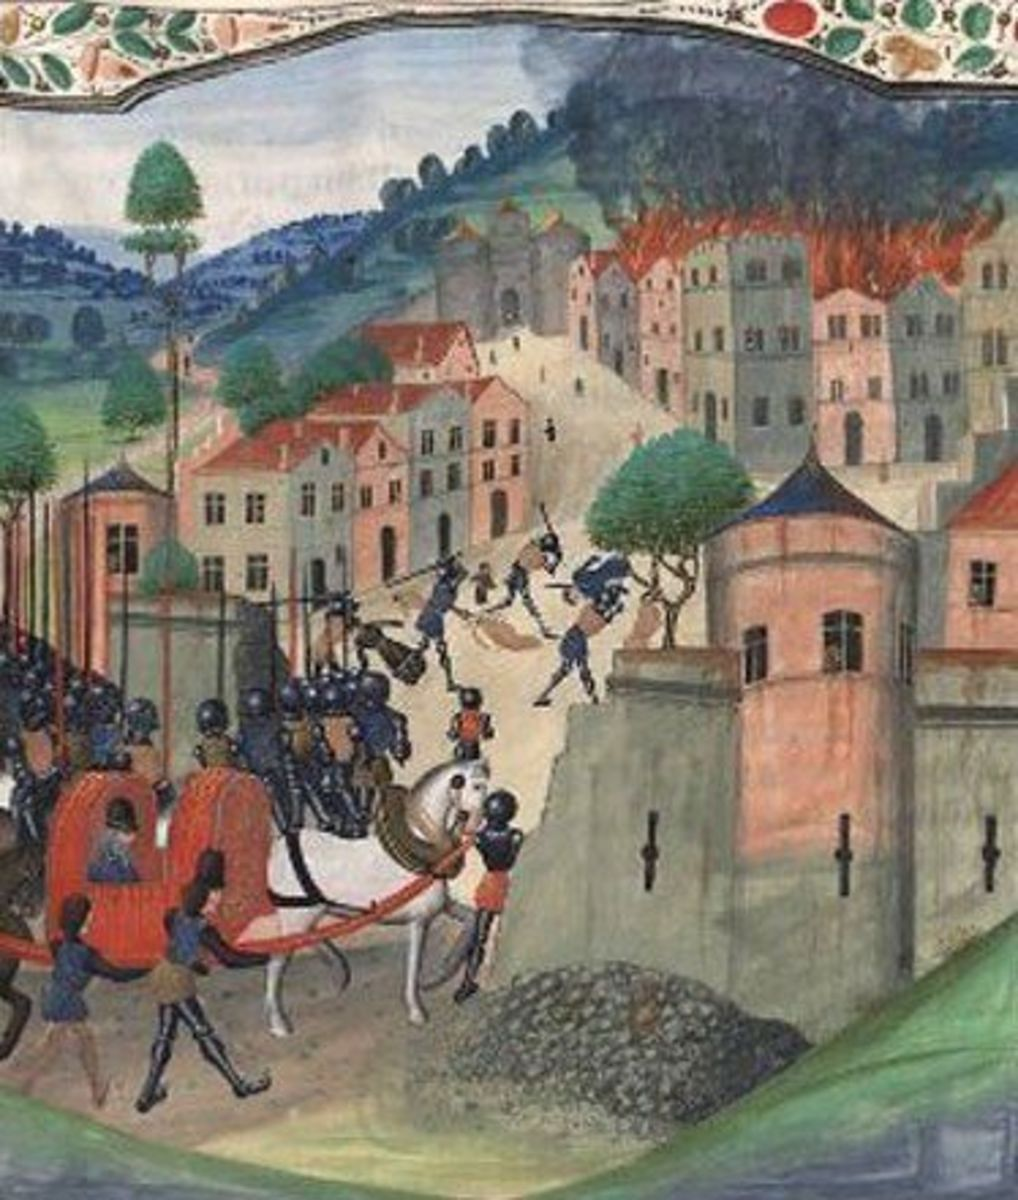 The Sack of Limoges, arguably the event that ruined Edward the Black Prince's reputation.